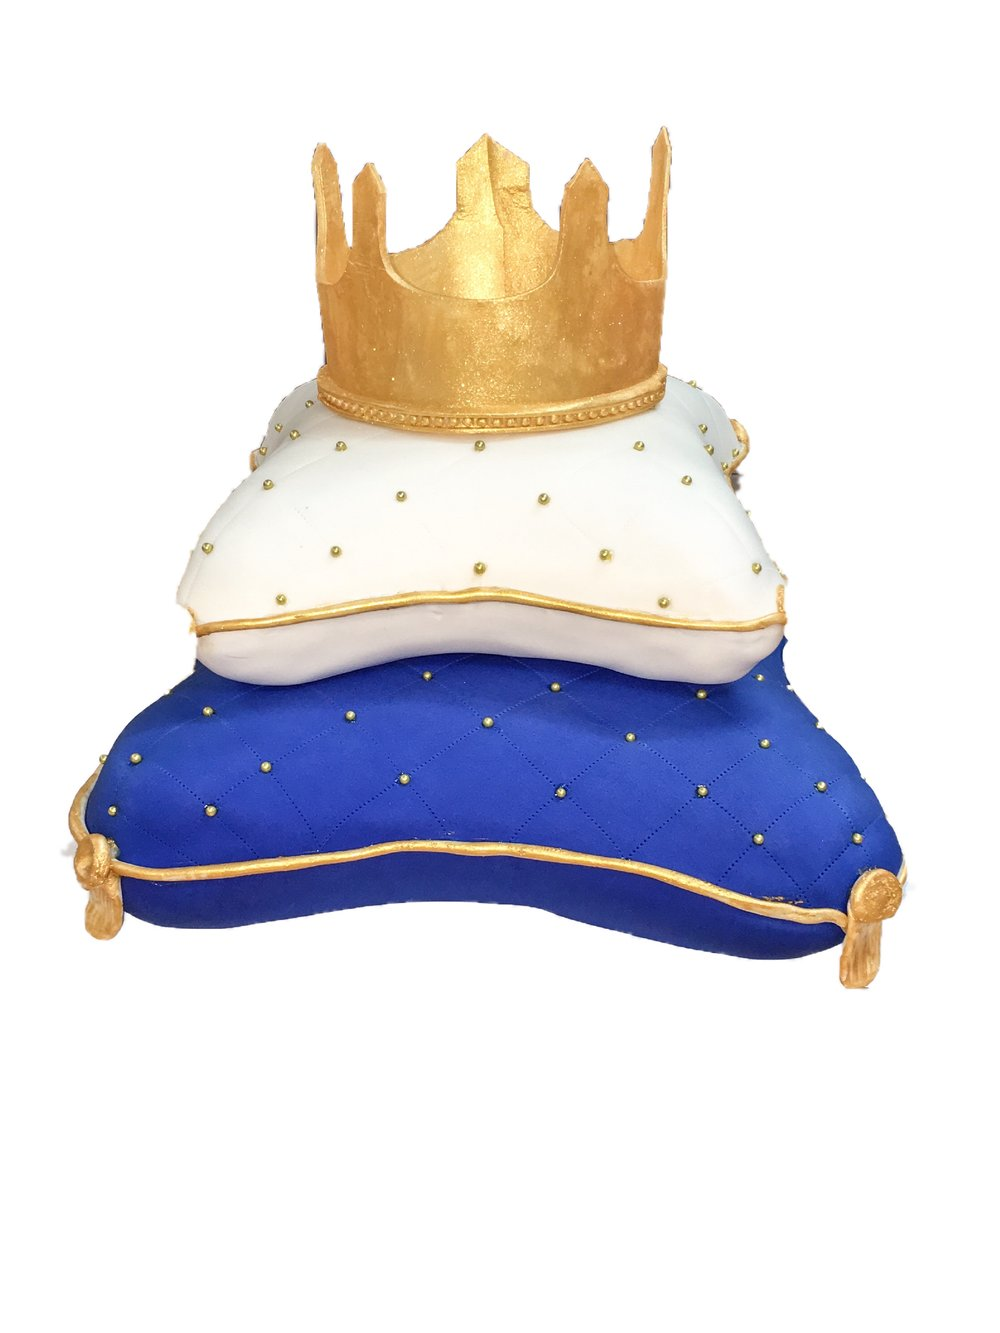 Prince Pillow Shower Cake